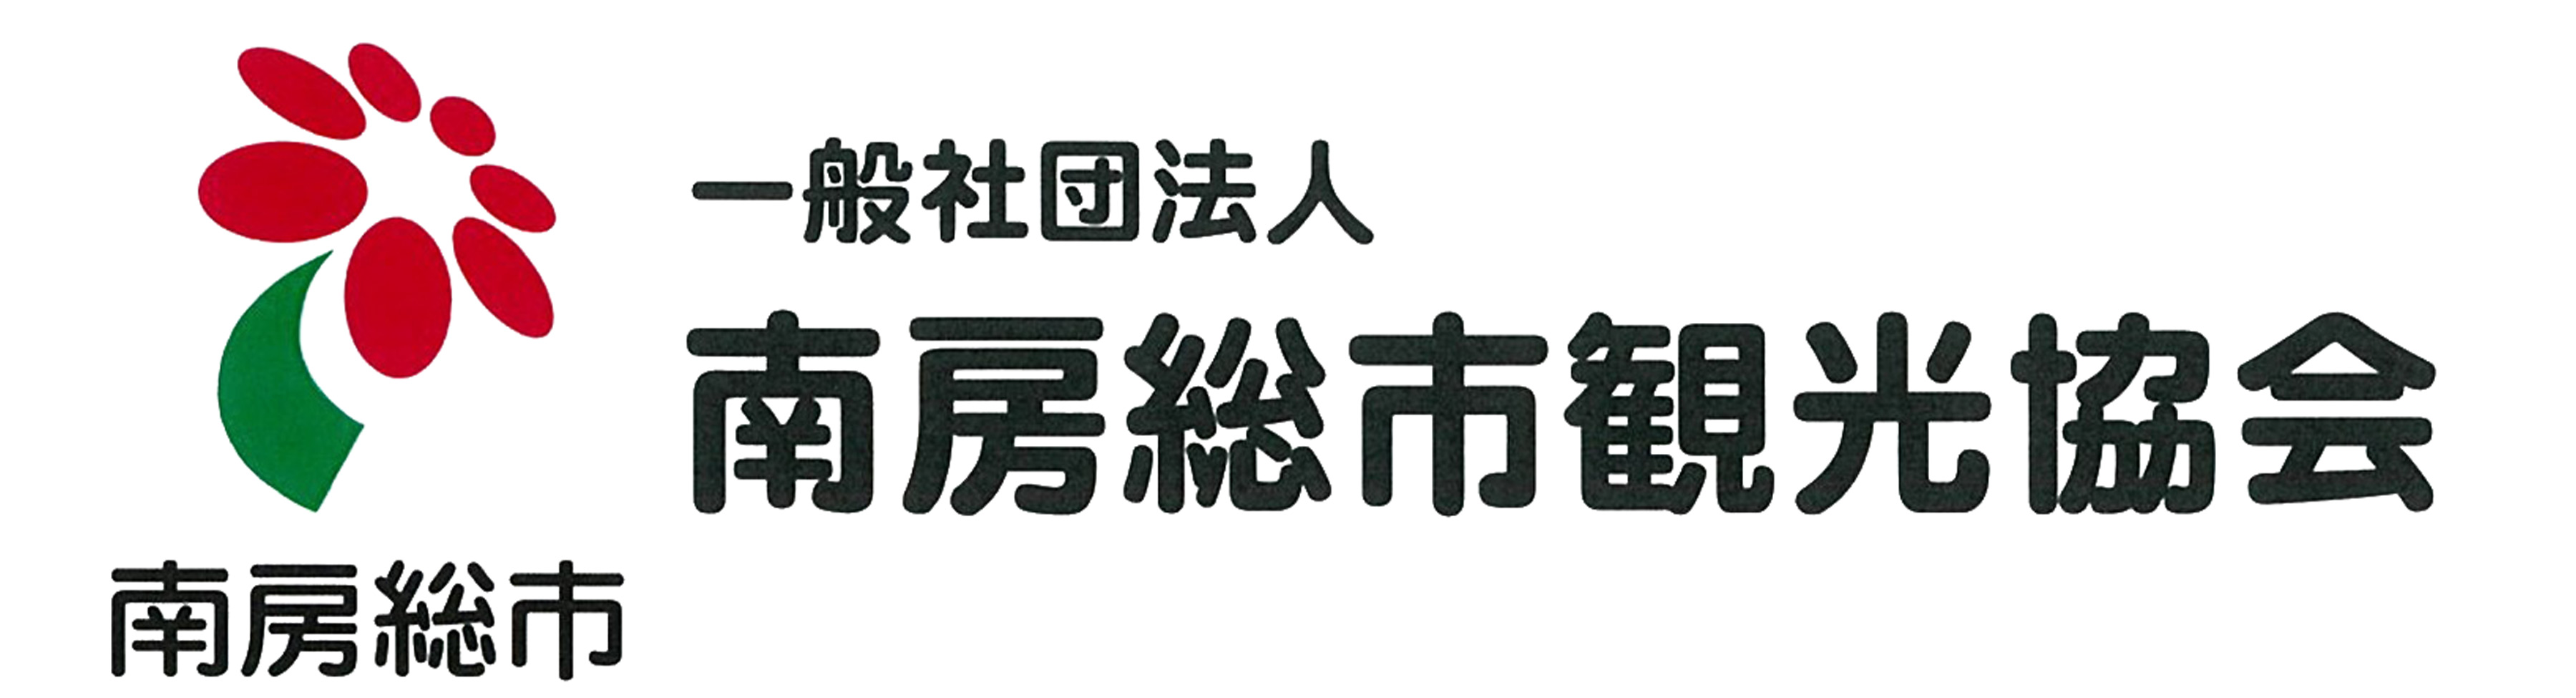 笑福 - Minamiboso City Tourism Association